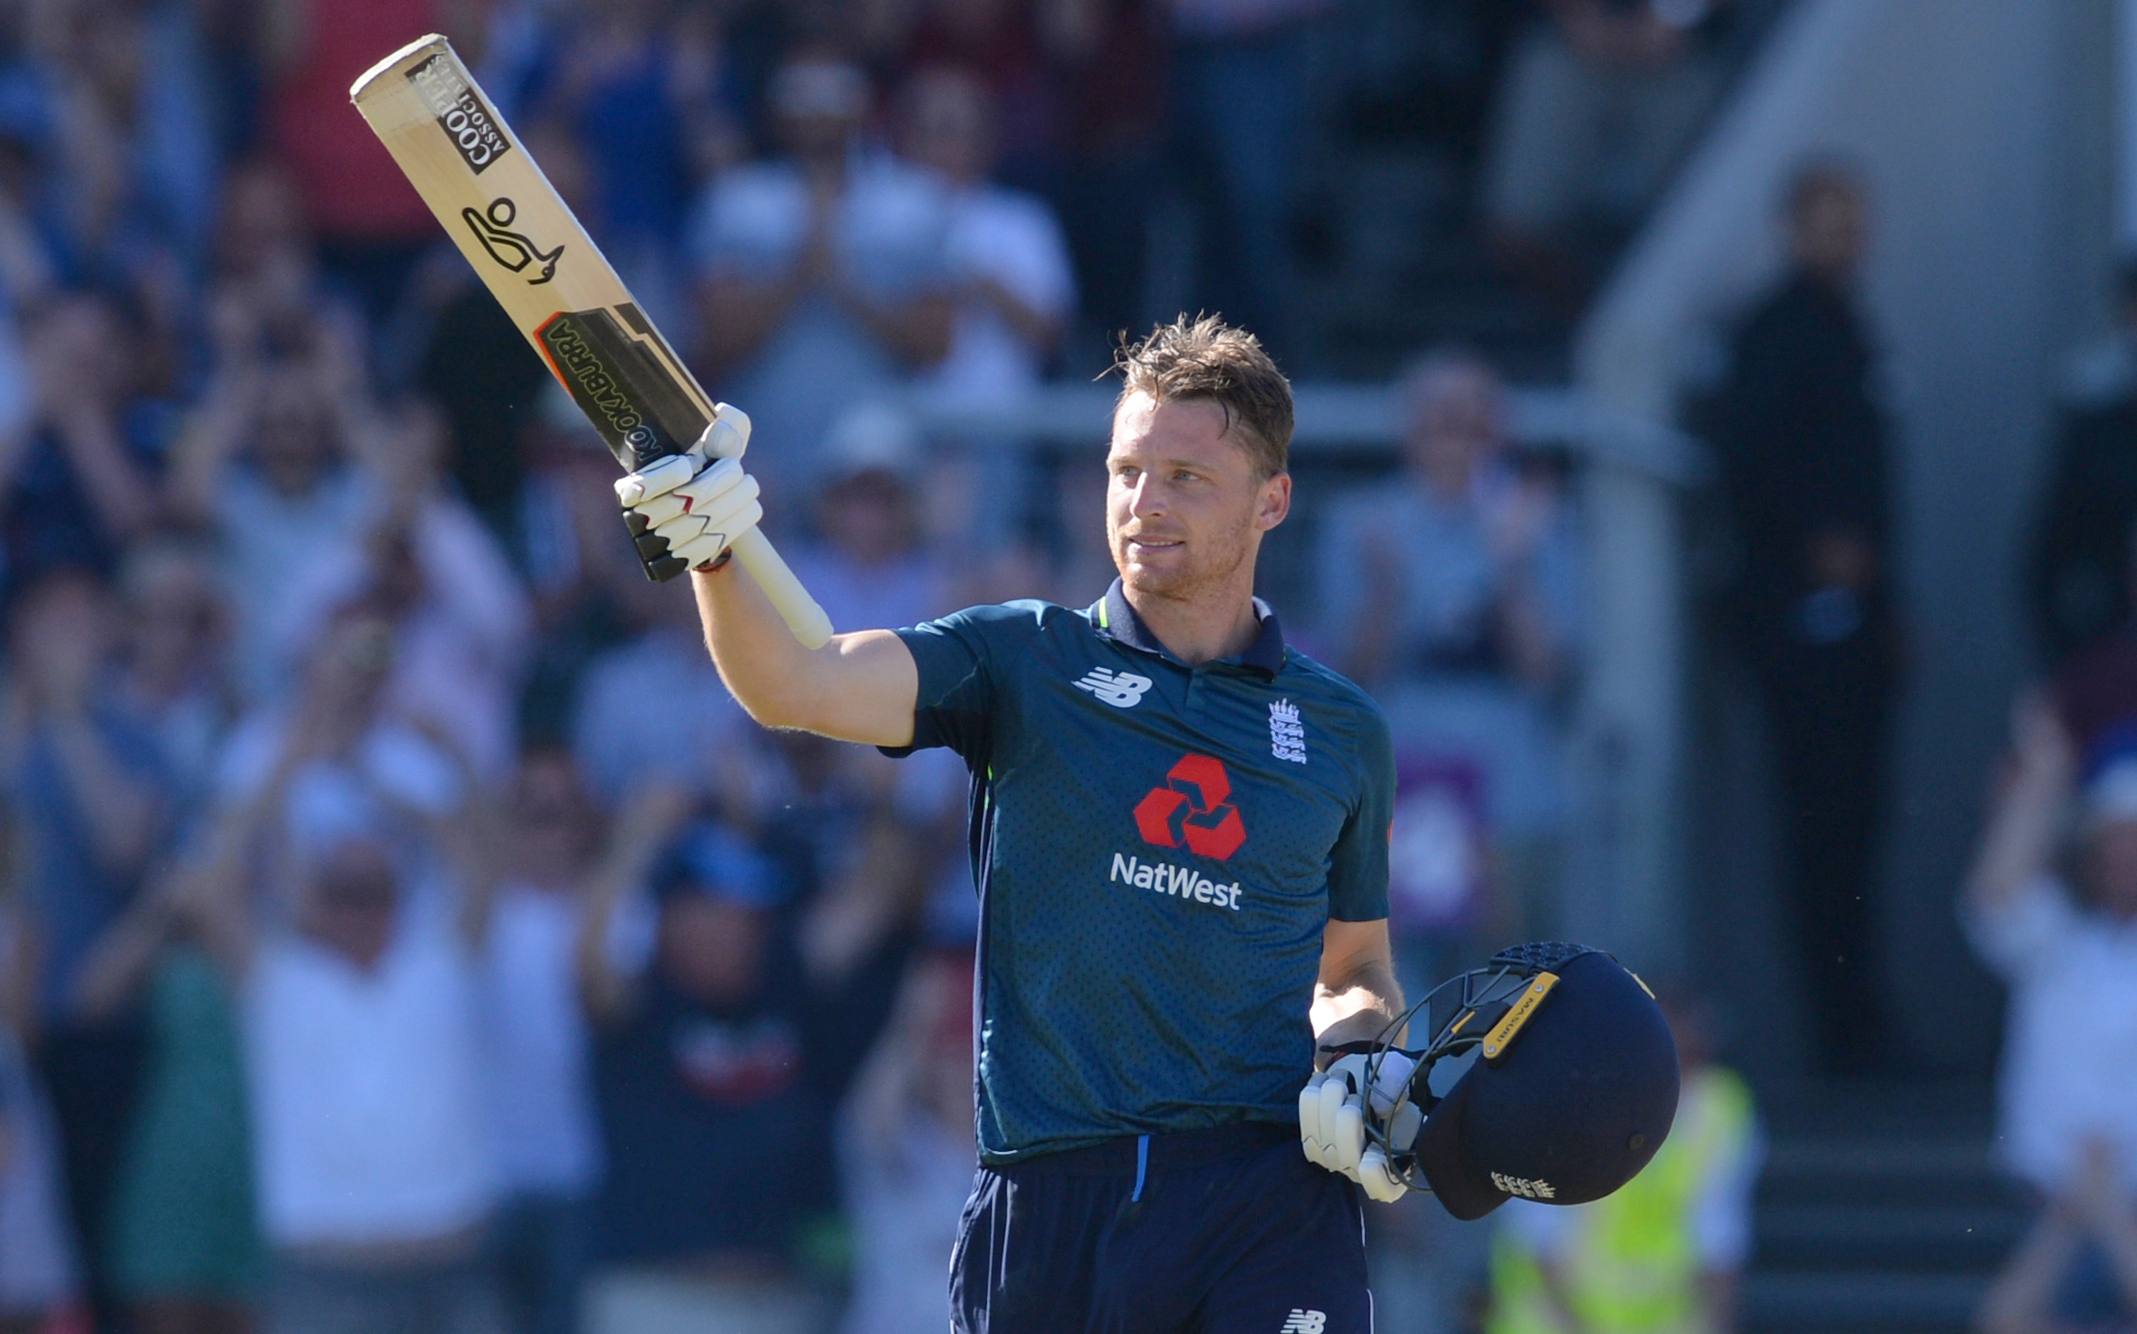 England's Jos Buttler celebrates after hitting the winning runs in the fifth Royal London One-Day International against Australia at Emirates Old Trafford cricket ground in Manchester on Sunday